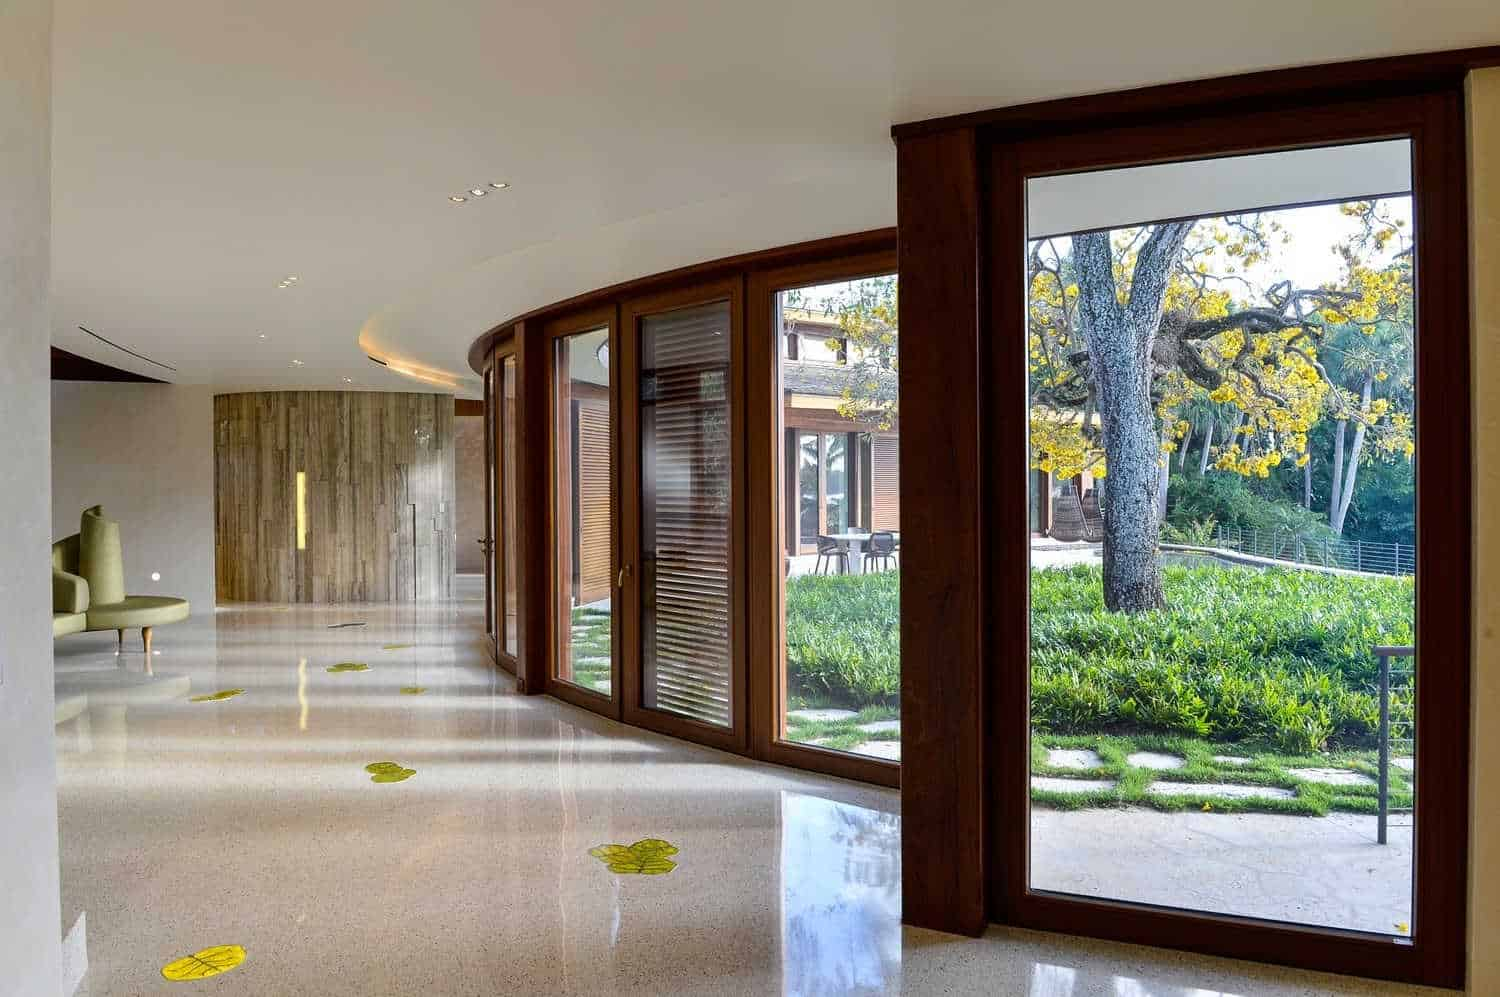 Curved foyer features a wooden framed glass walls and elegant marble flooring accented with foliage art that complements the outdoor greenery.